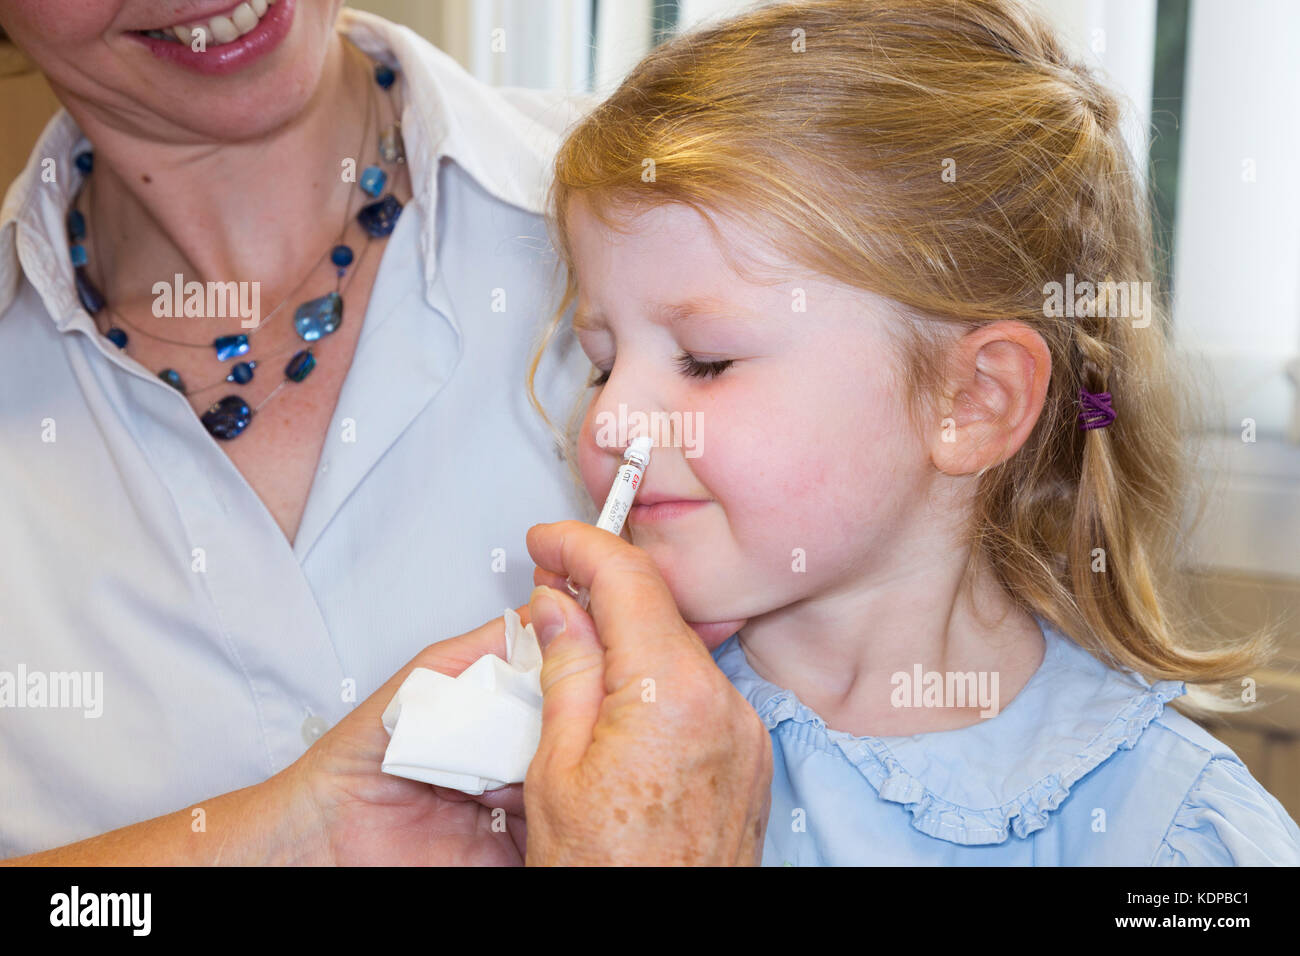 3 year old child, with her mum / mother, receives dose of Fluenz flu vaccine nasal spray immunisation from NHS Practice Stock Photo